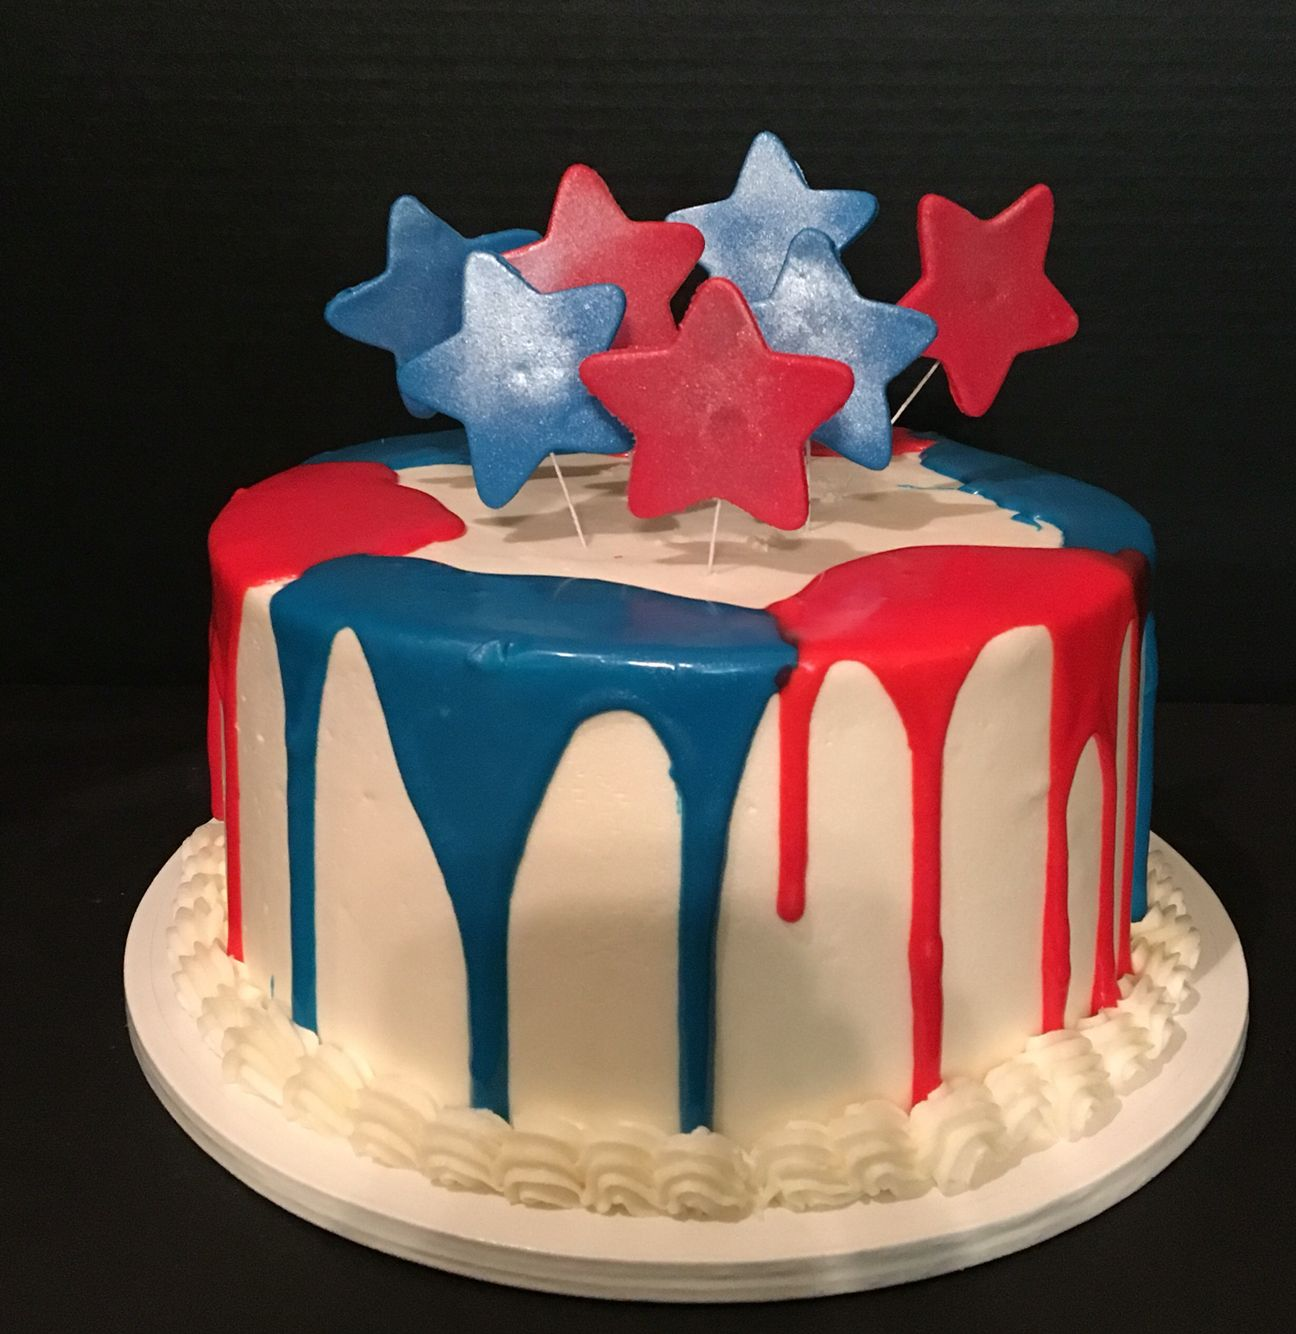 Red White And Blue Drip Cake